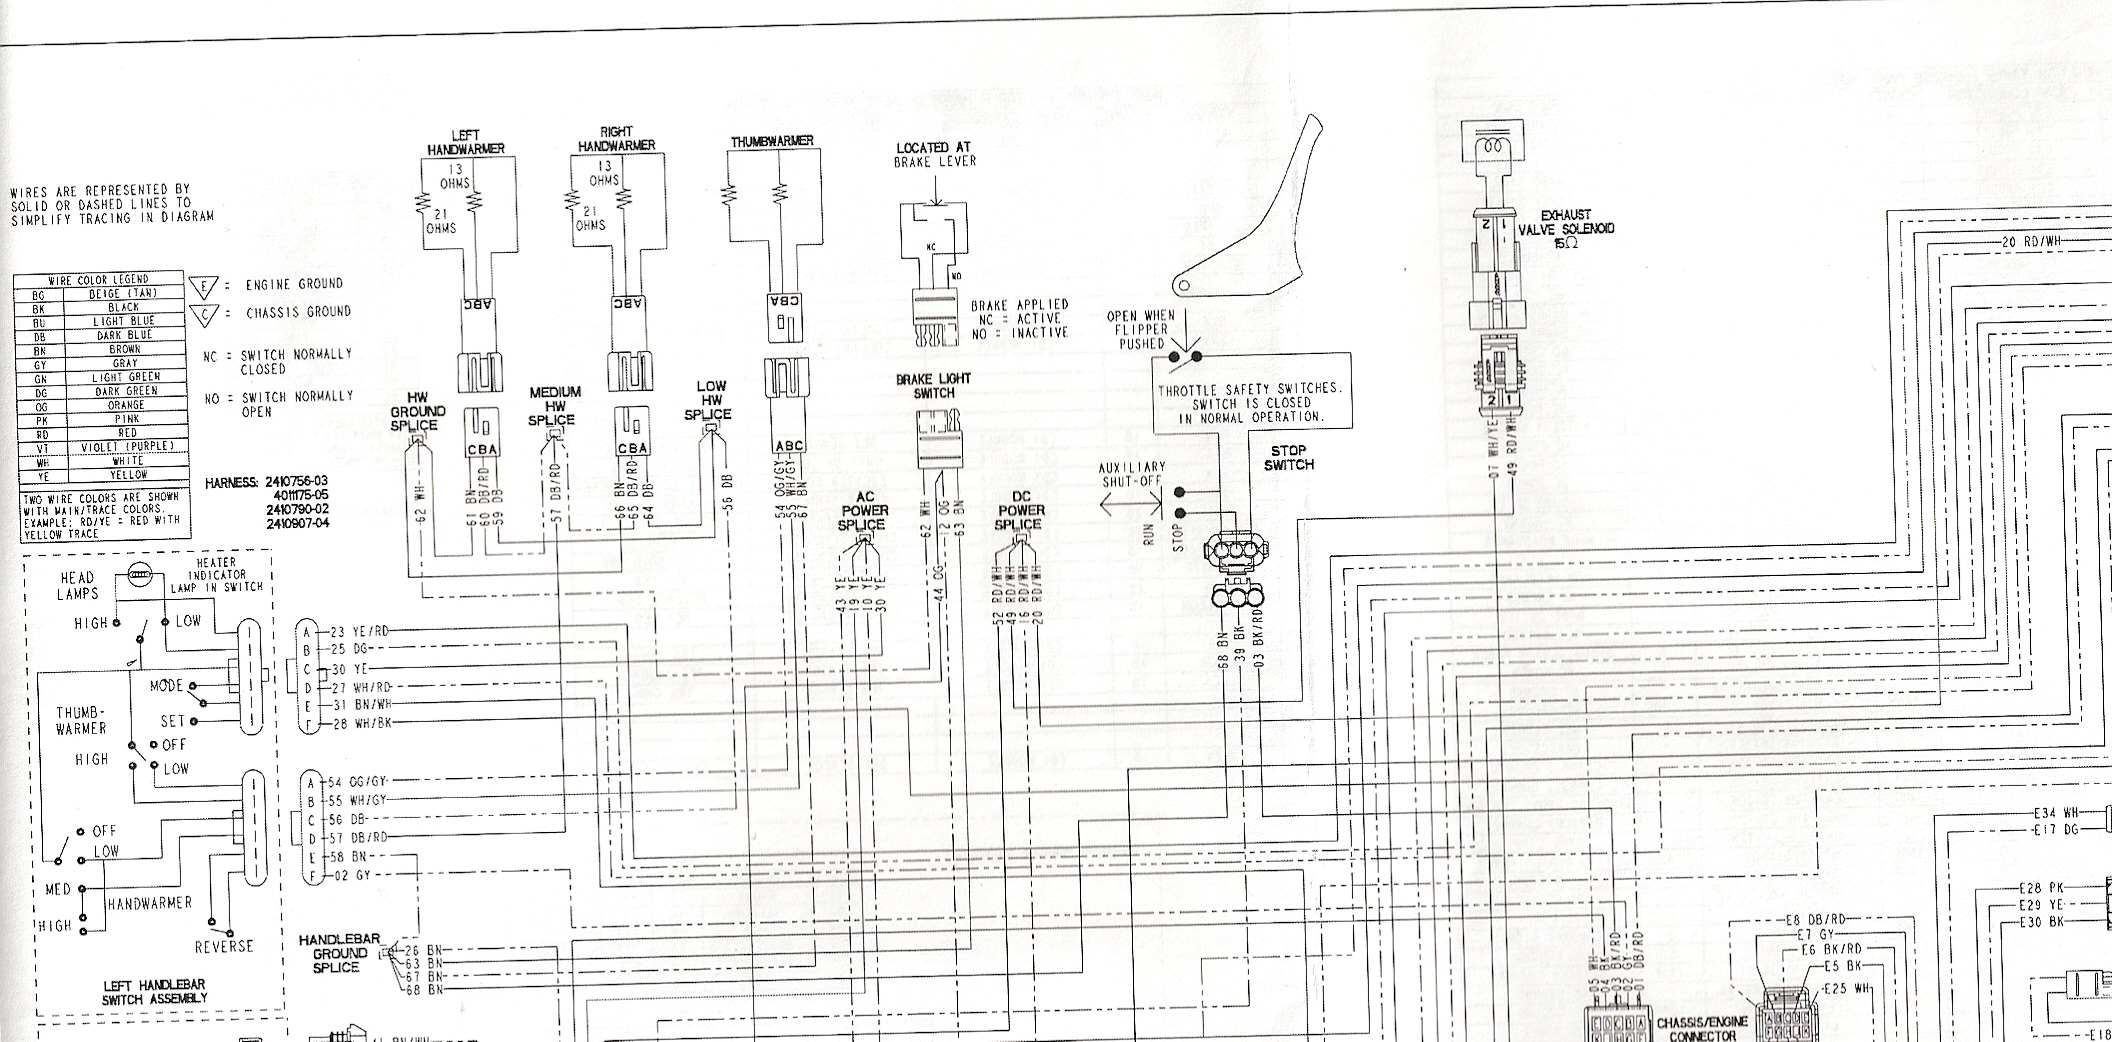 Wiring Diagram Polaris Ranger 800 Diagrams Wiring